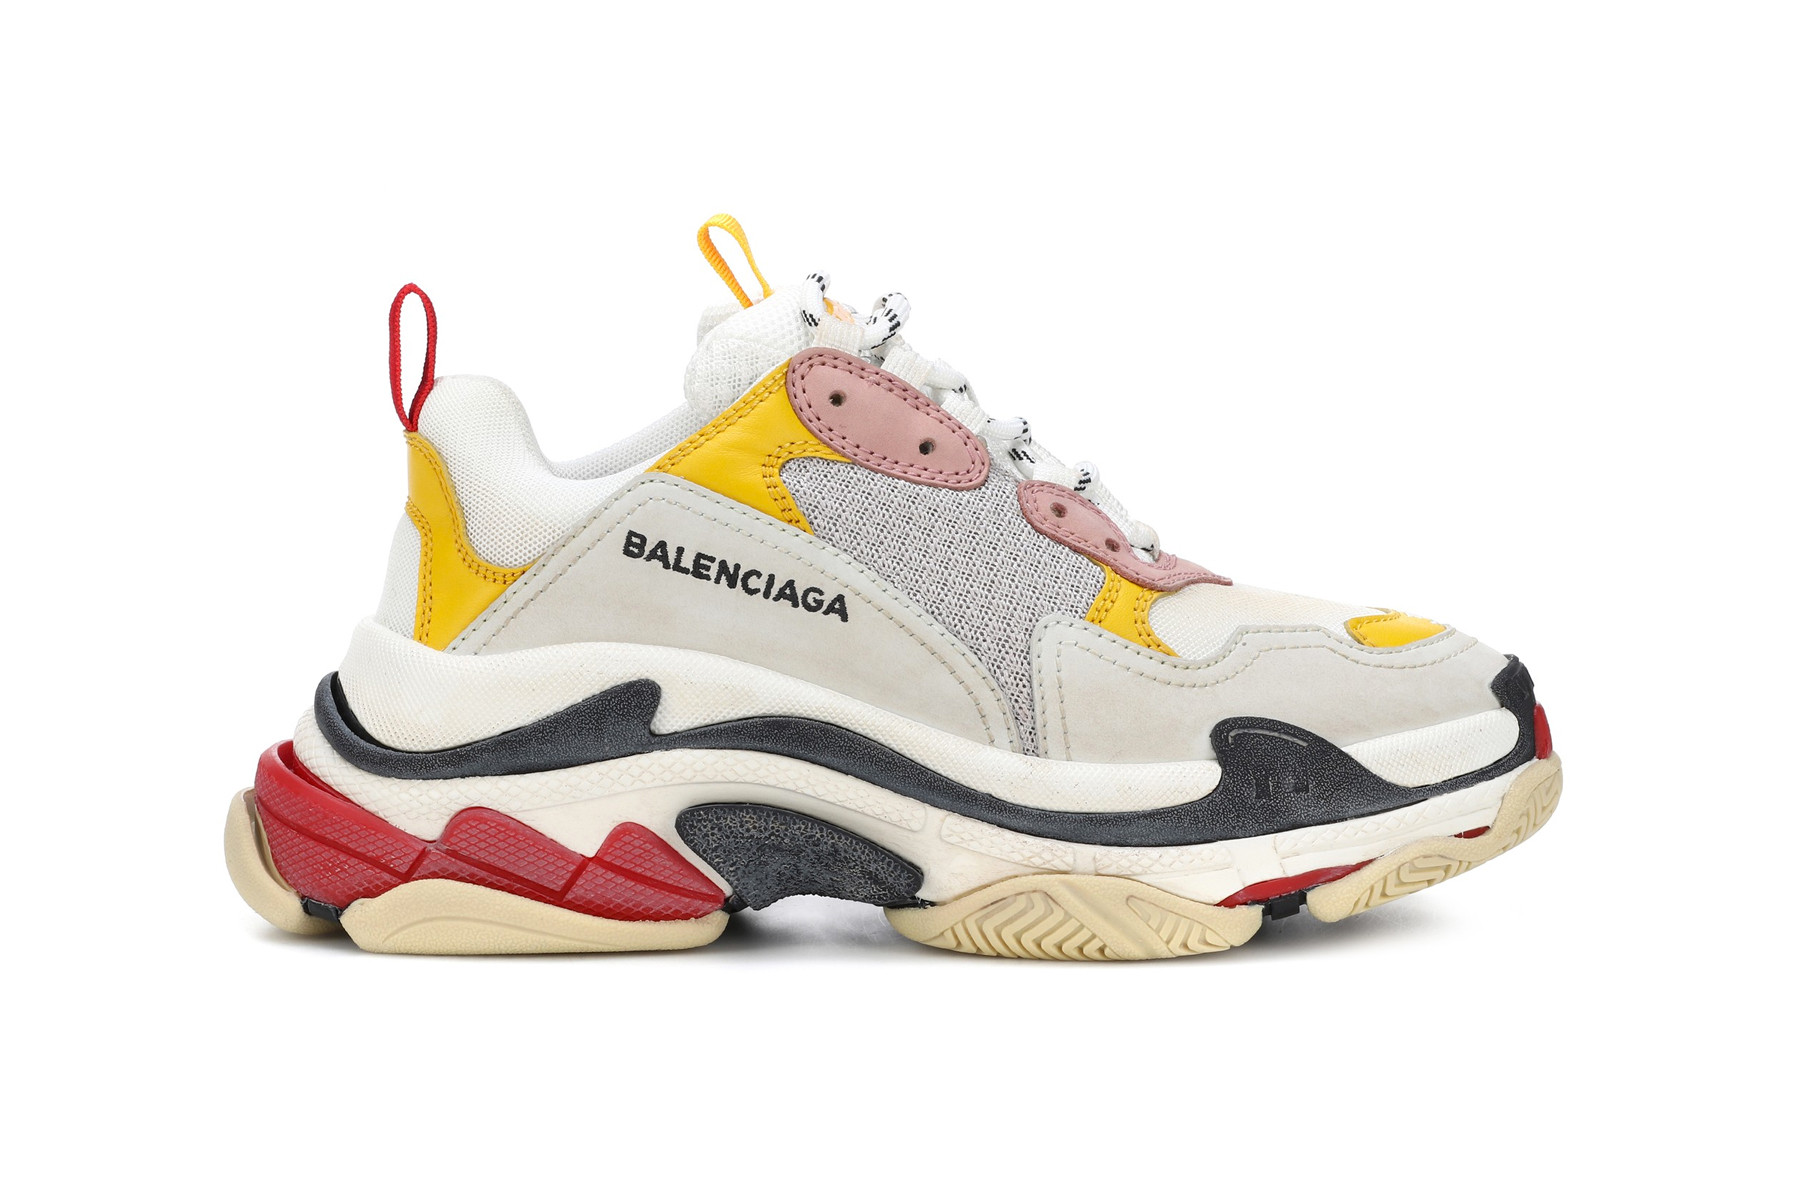 These Balenciaga Triple-S Shoes Have